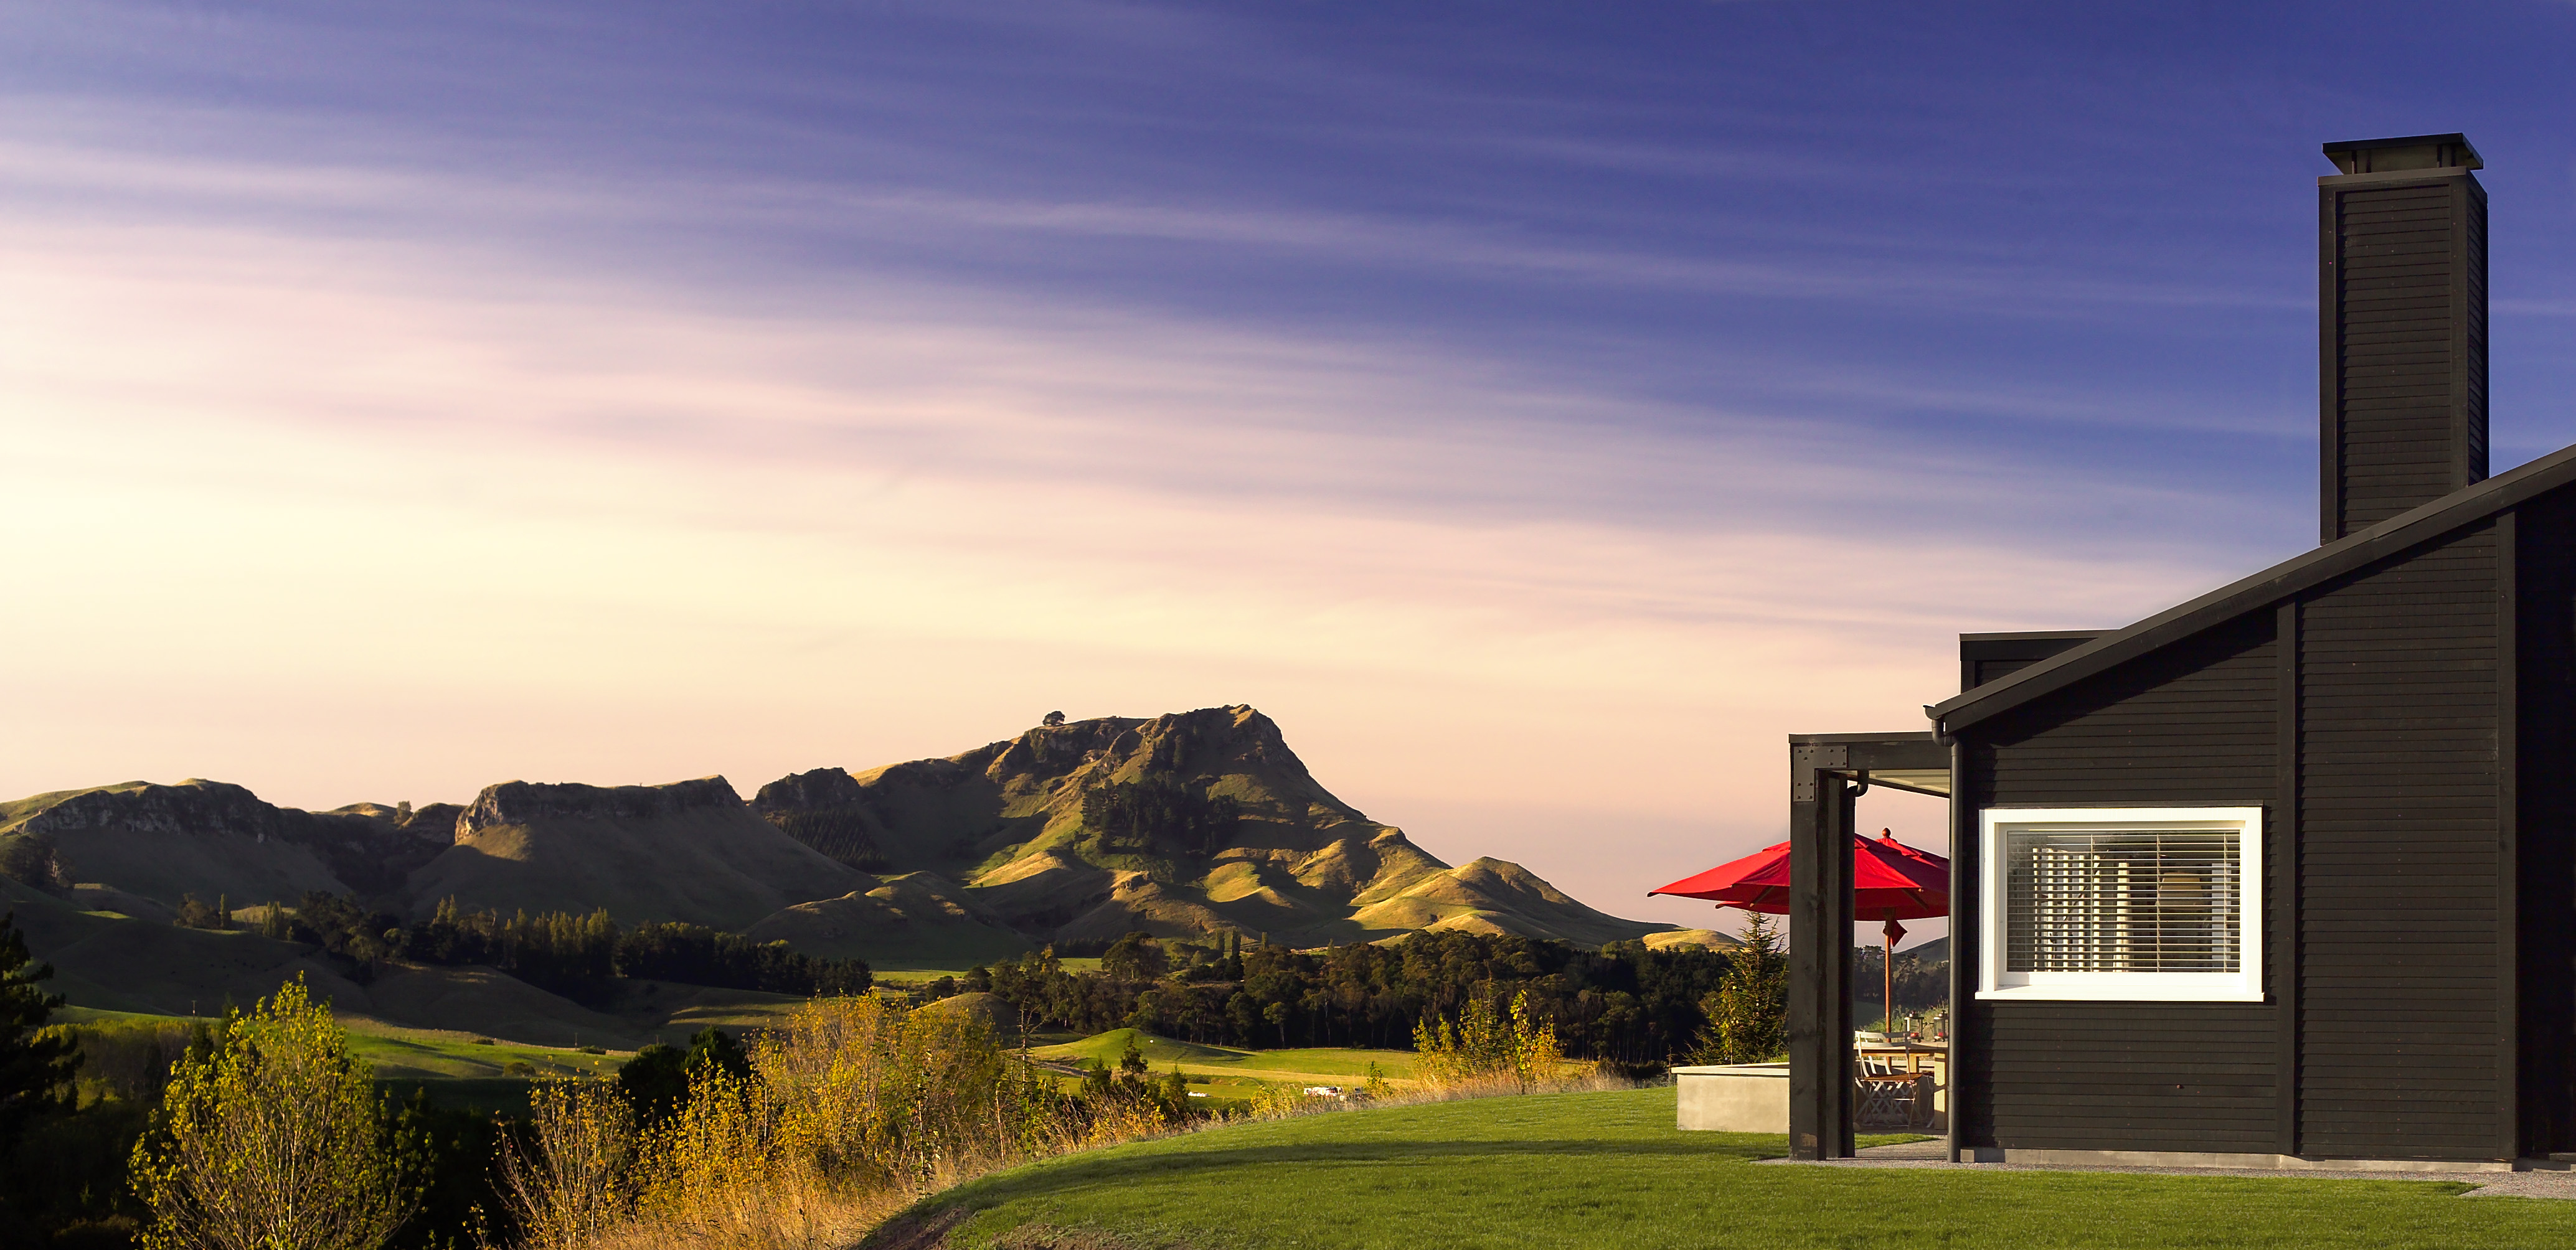 New Zealand honeymoon - Hawkes Bay luxury accommodation for honeymoon or wedding